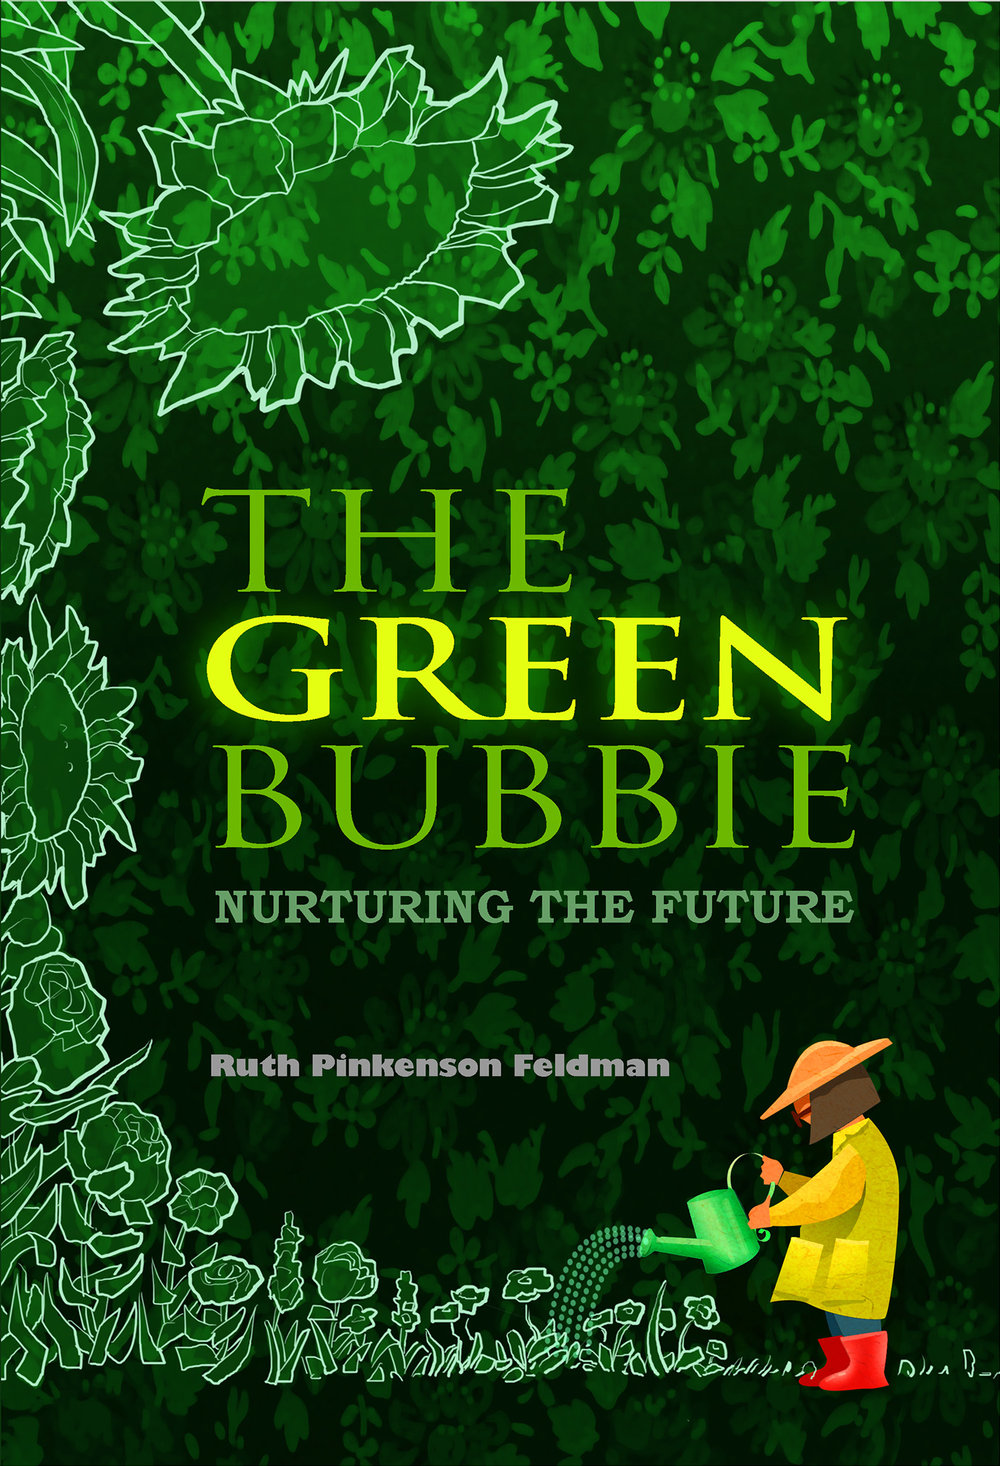 Green Bubbie Cover Book Cover, Daliya Publishing, 2014